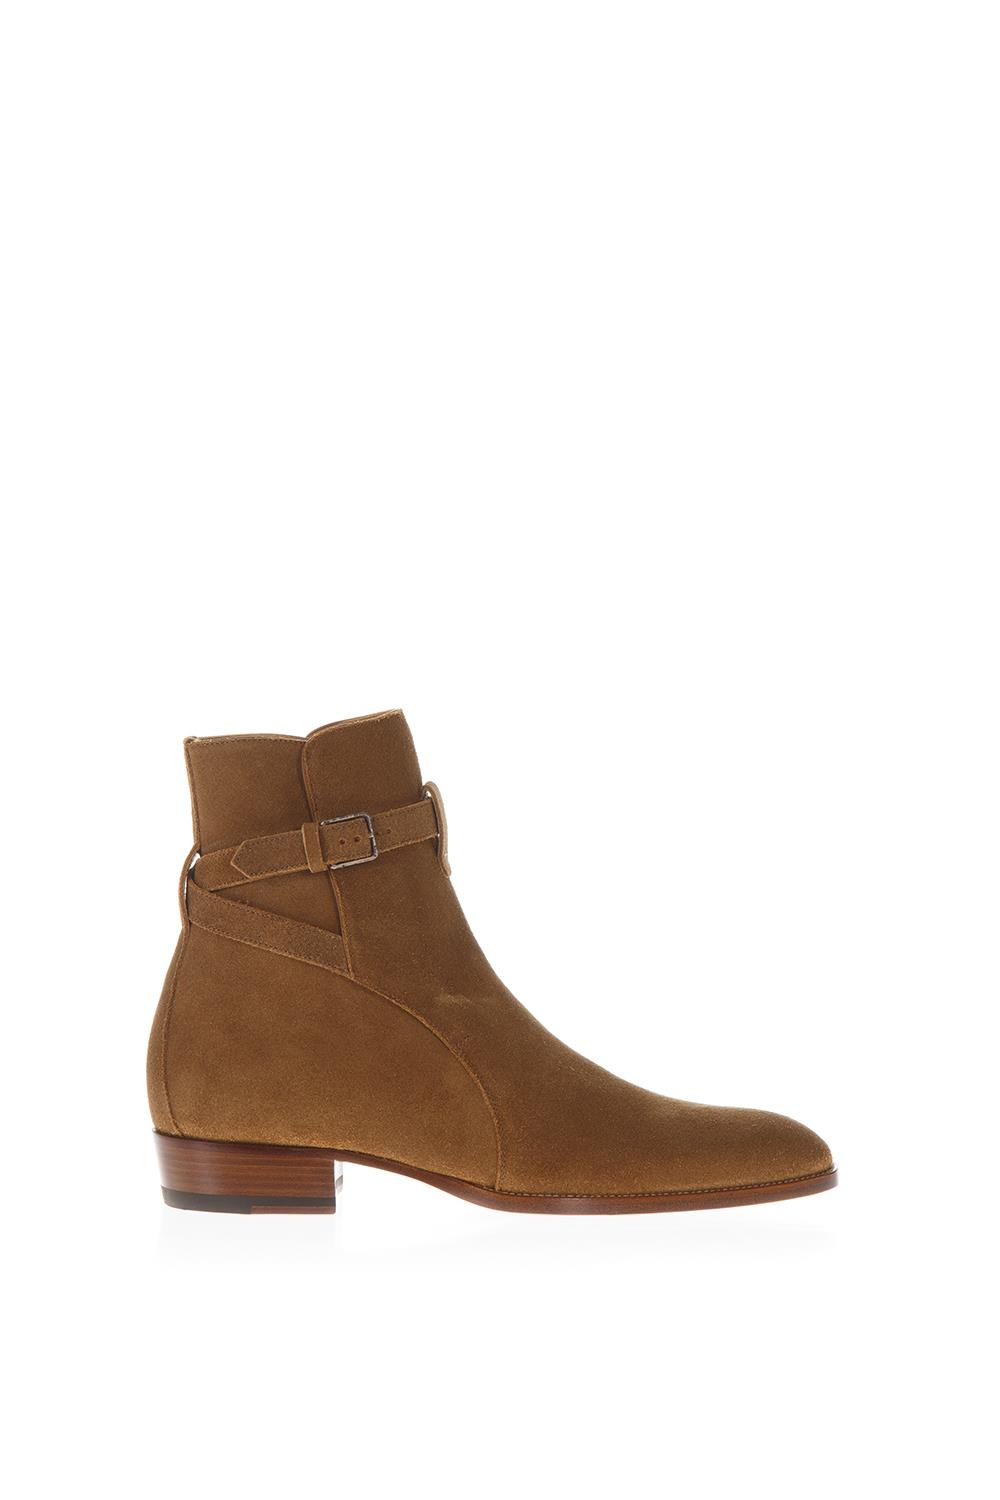 820064d1530c9 WYATT 30 LIGHT BROWN SUEDE ANKLE BOOTS FW 2018 2019 - SAINT LAURENT -  Boutique Galiano